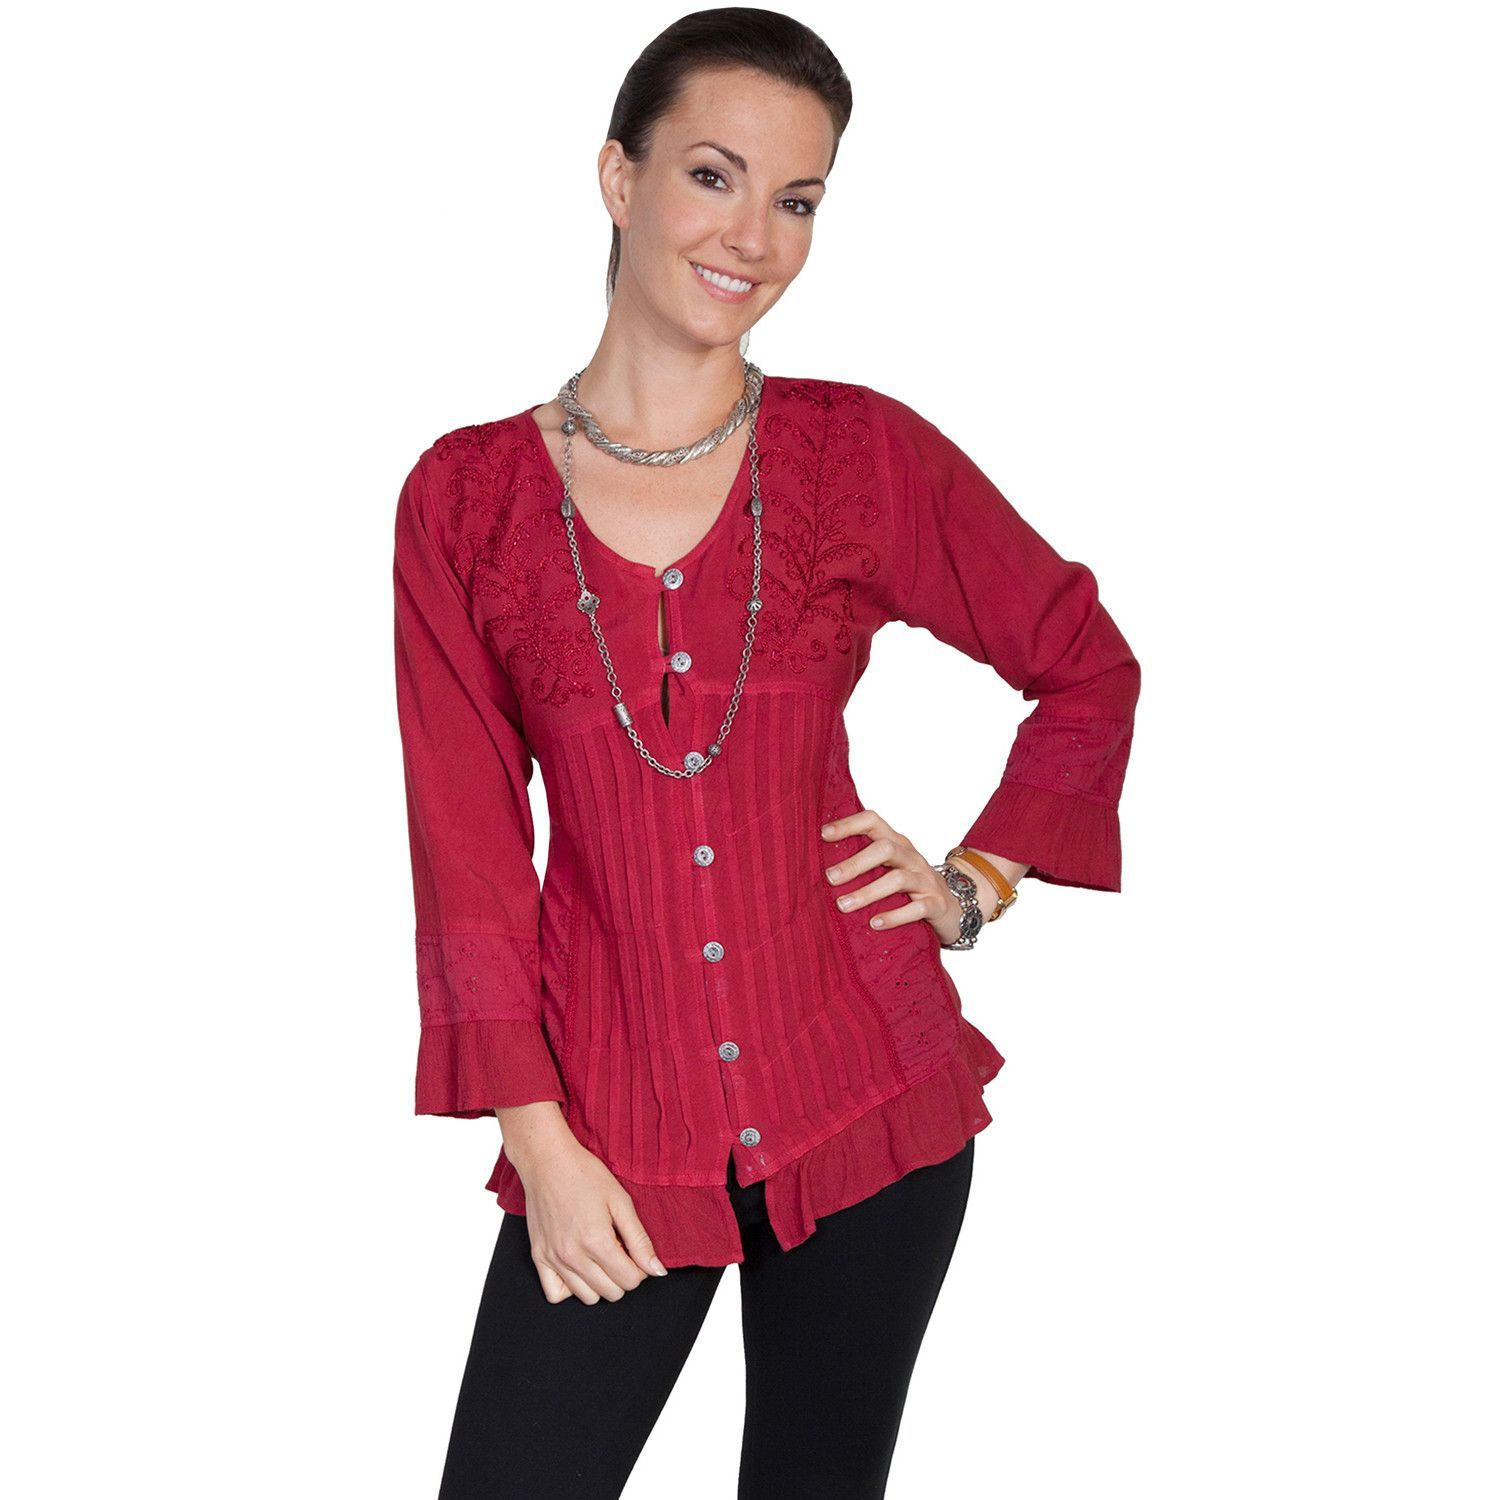 Scully Honey Creek Womens Burgundy 100% Rayon L/S Yoke Embroidered Blouse